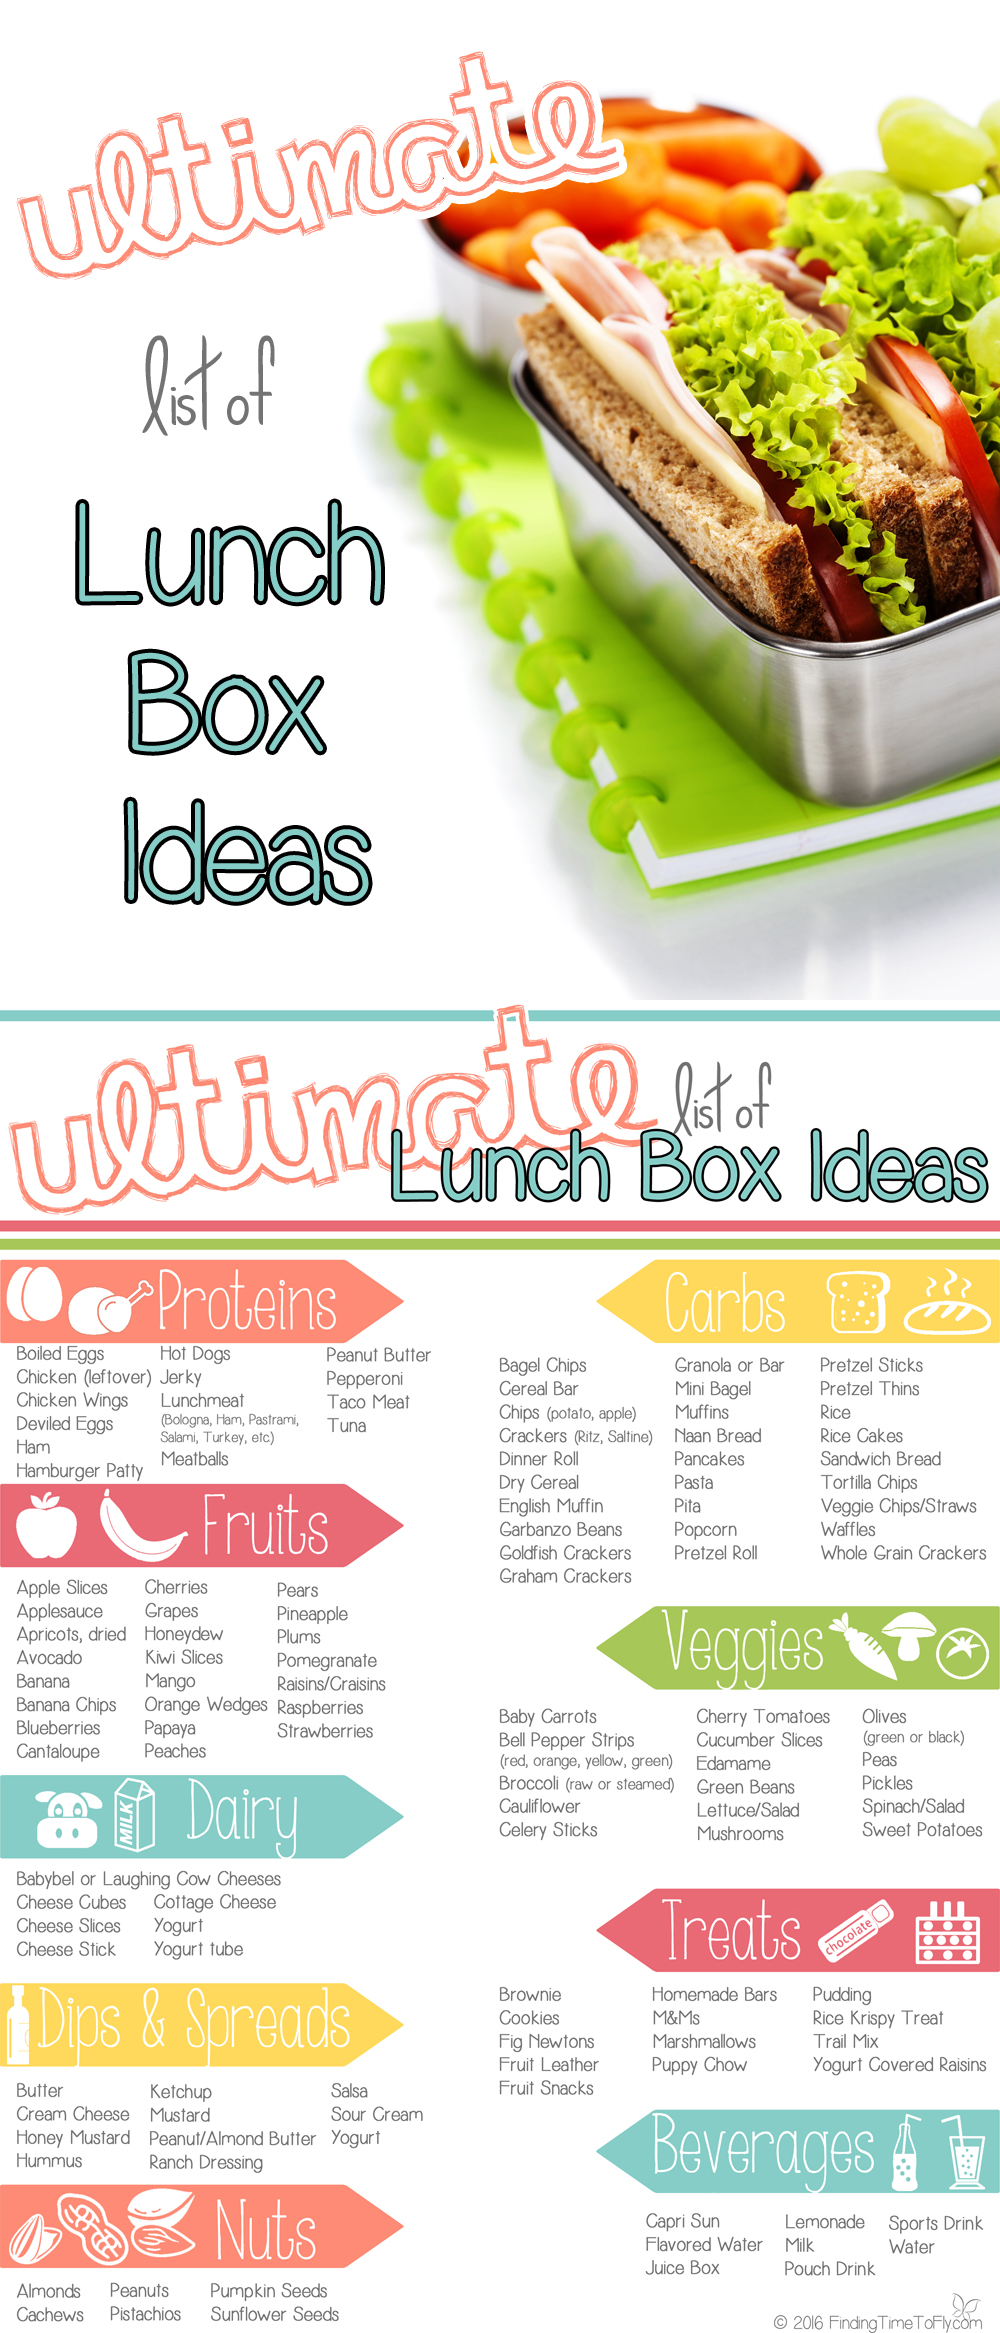 Ultimate List of Lunch Box Ideas - Finding Time To Fly